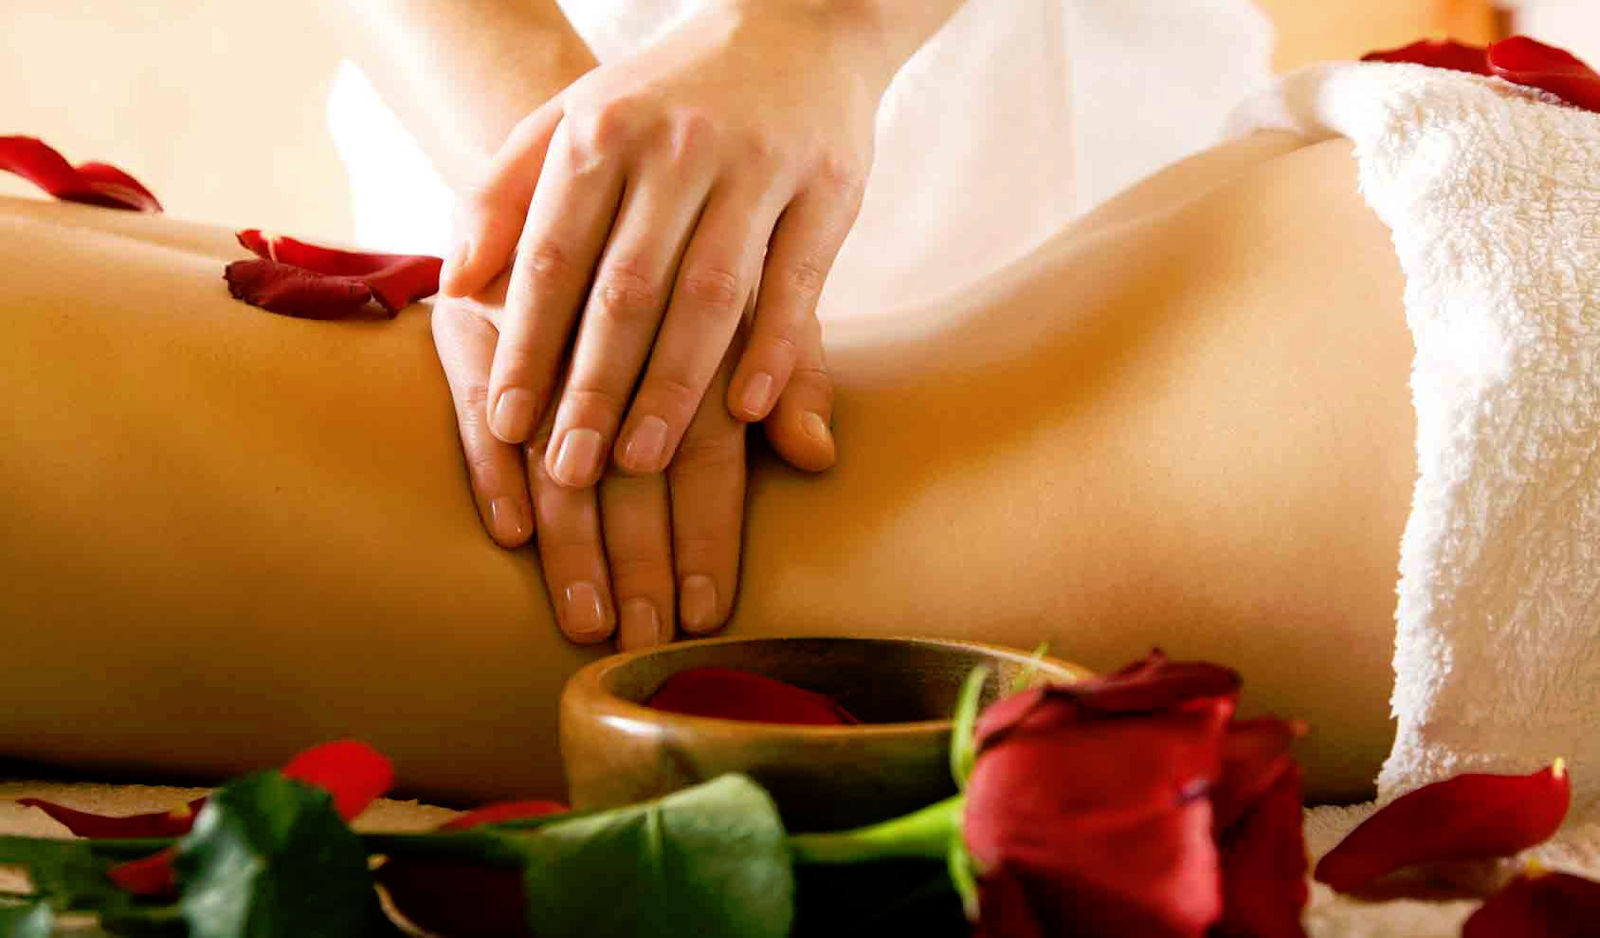 You tell, girl gets erection during massage share your